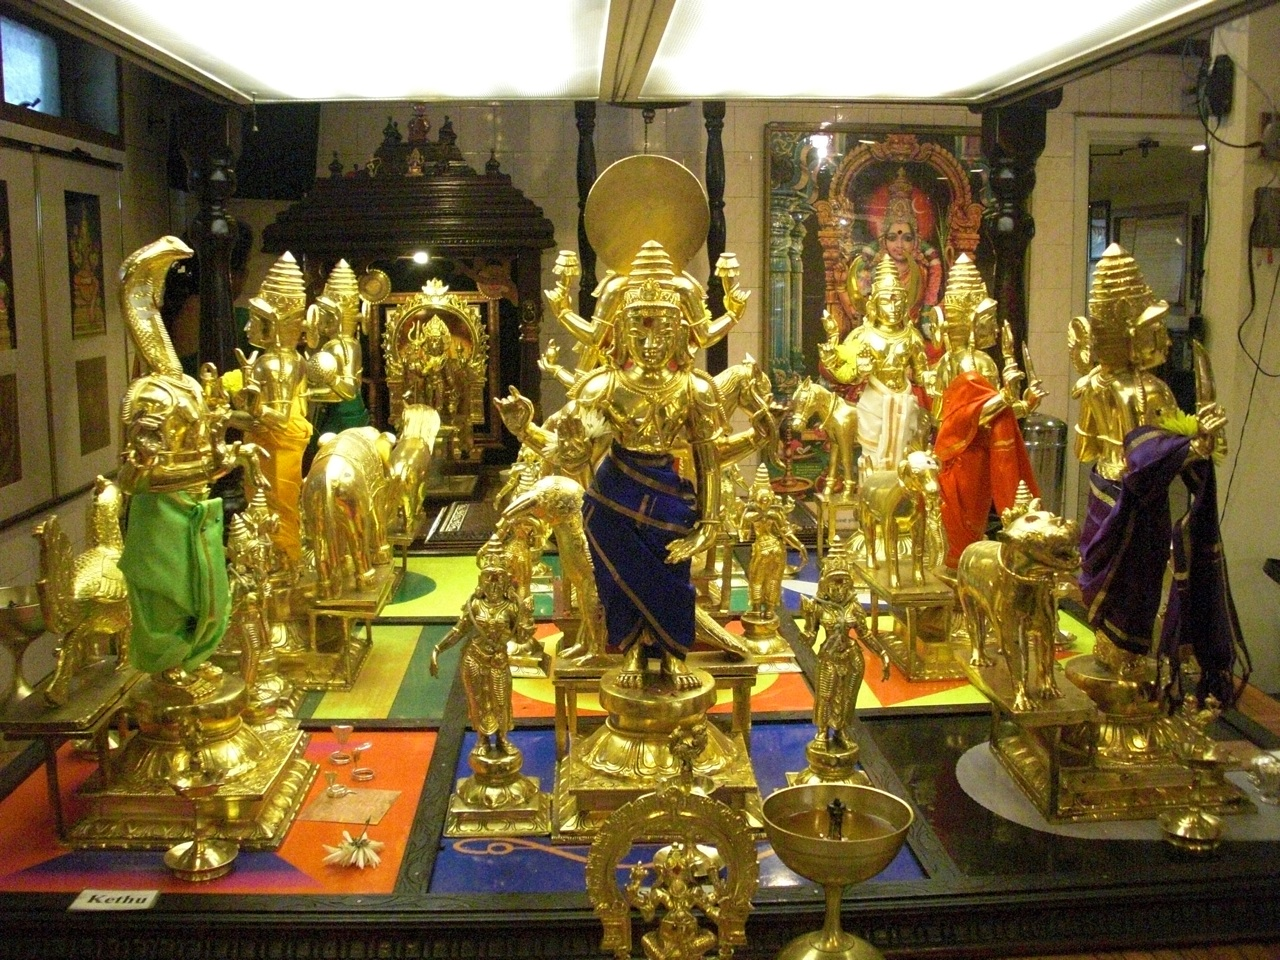 These Are The Statues Of The Gods Of The Planets, Inside The Temple